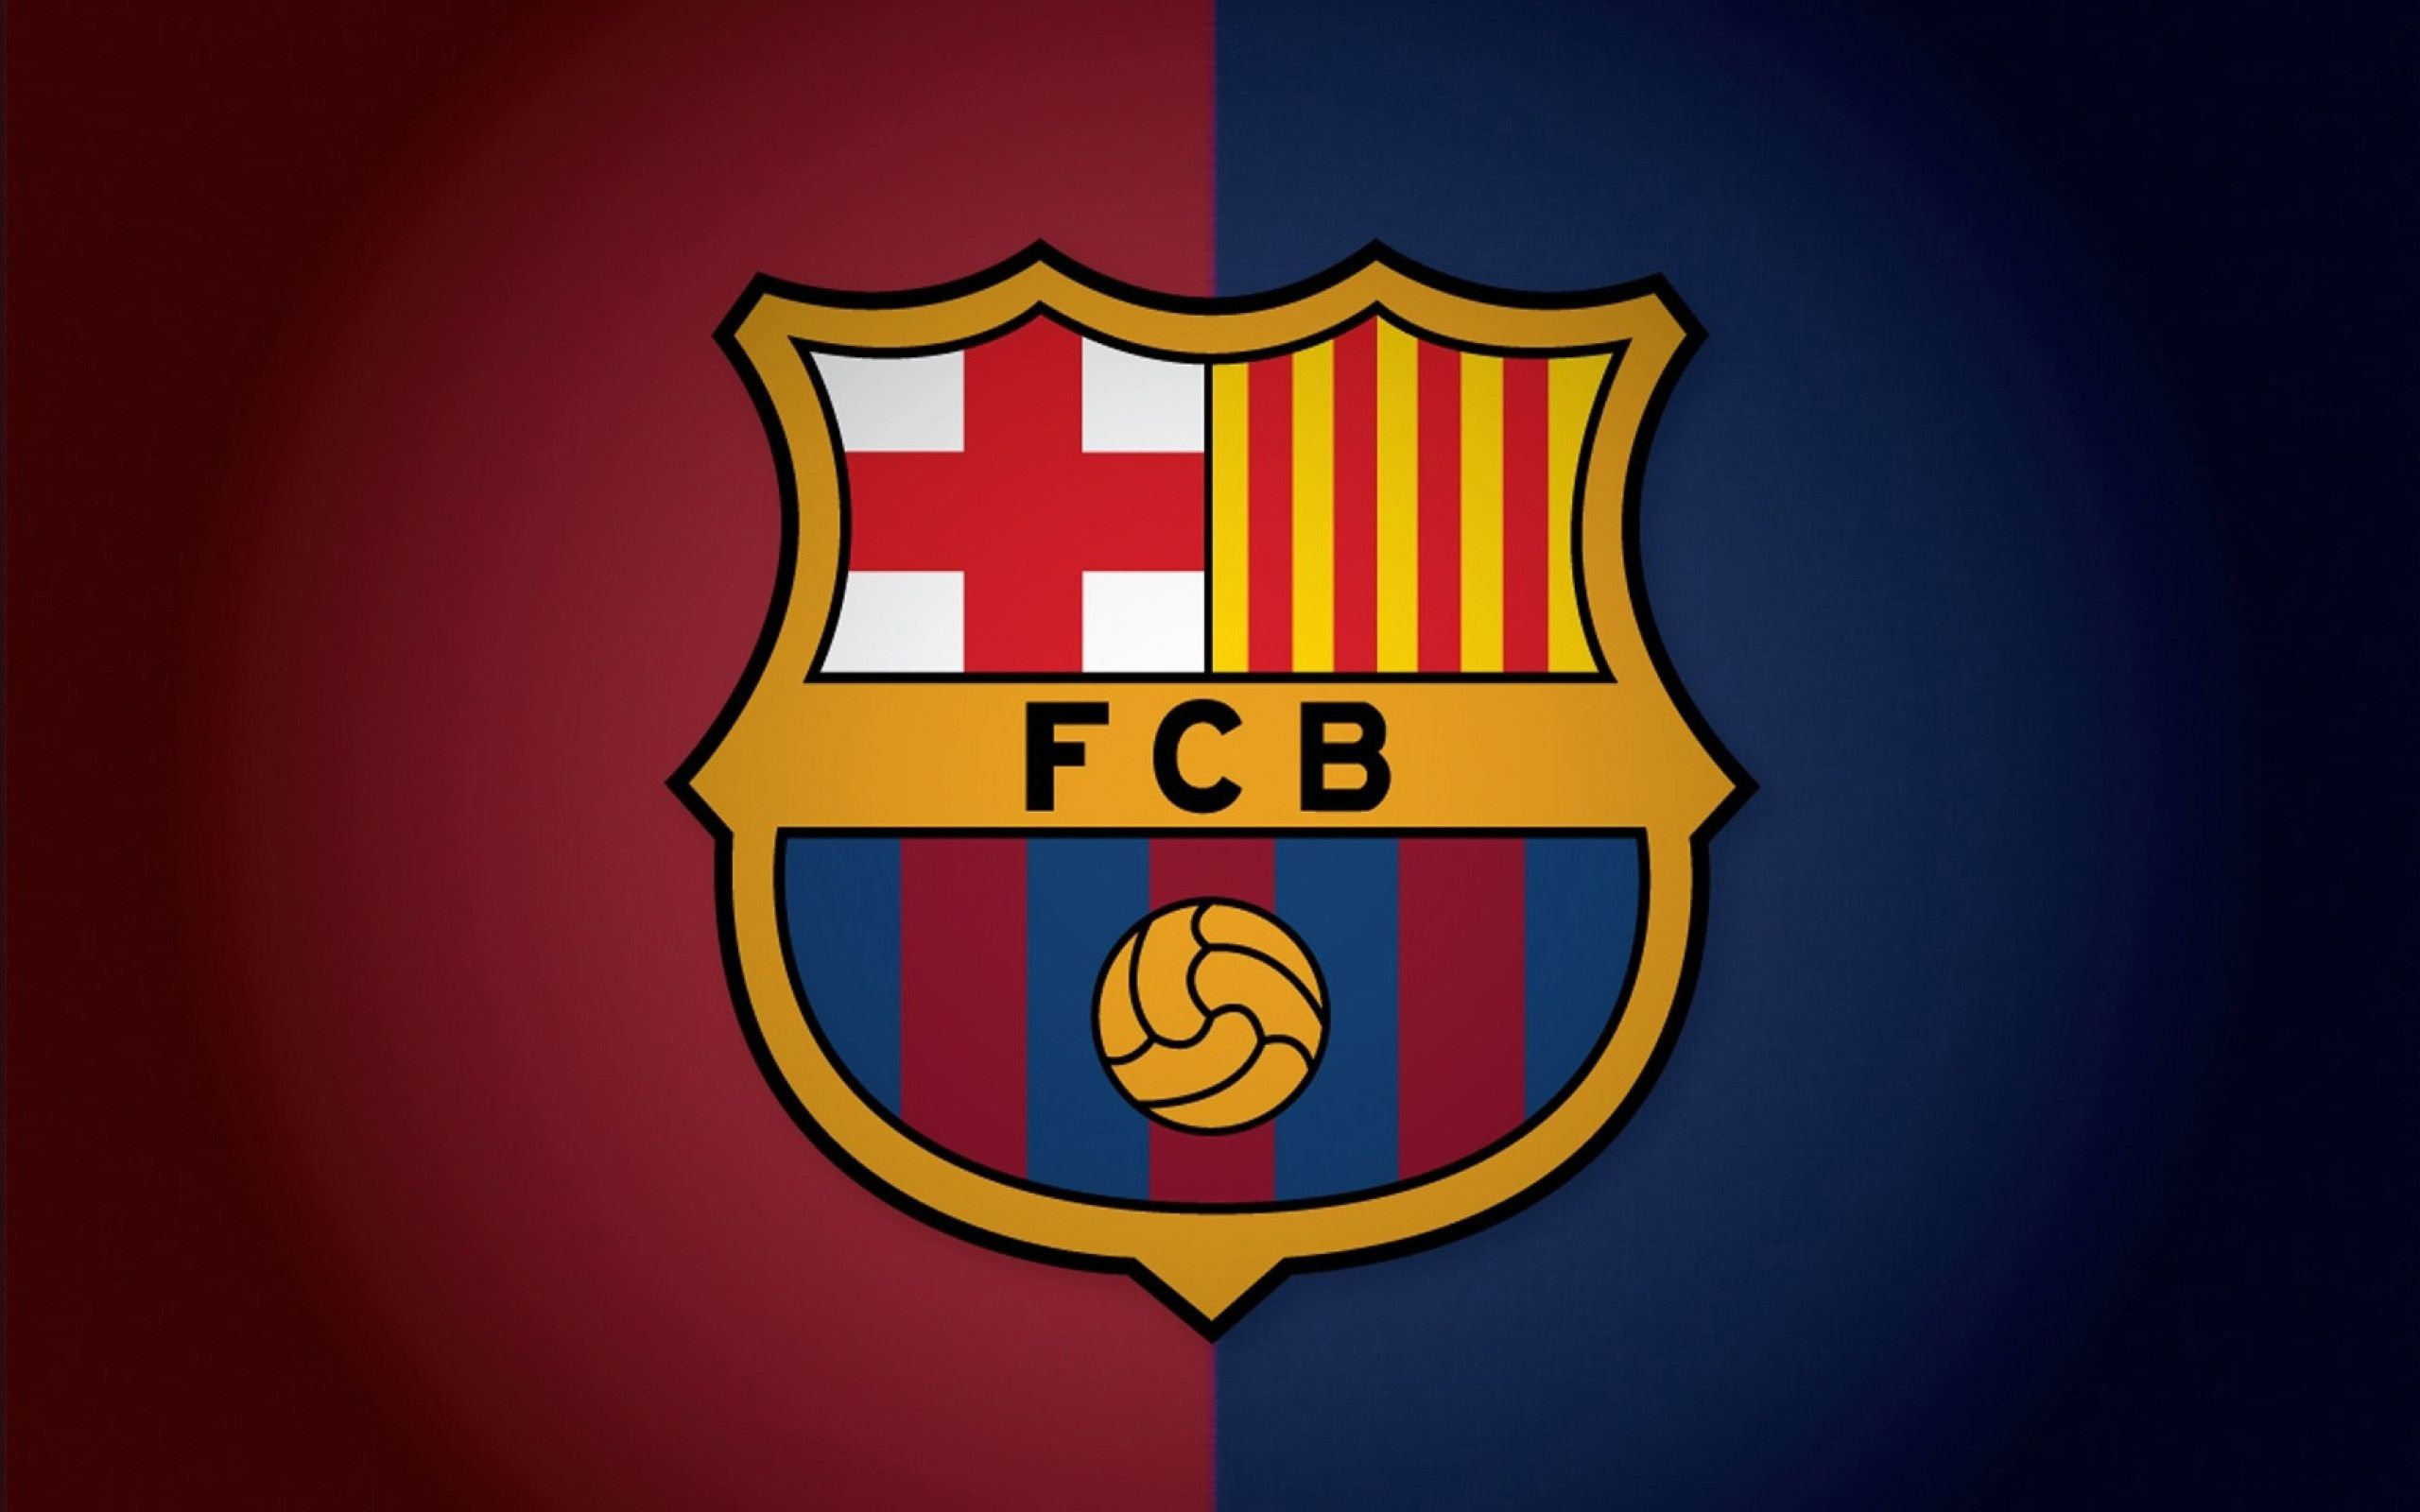 Barca Fc Wallpapers Posted By Michelle Thompson